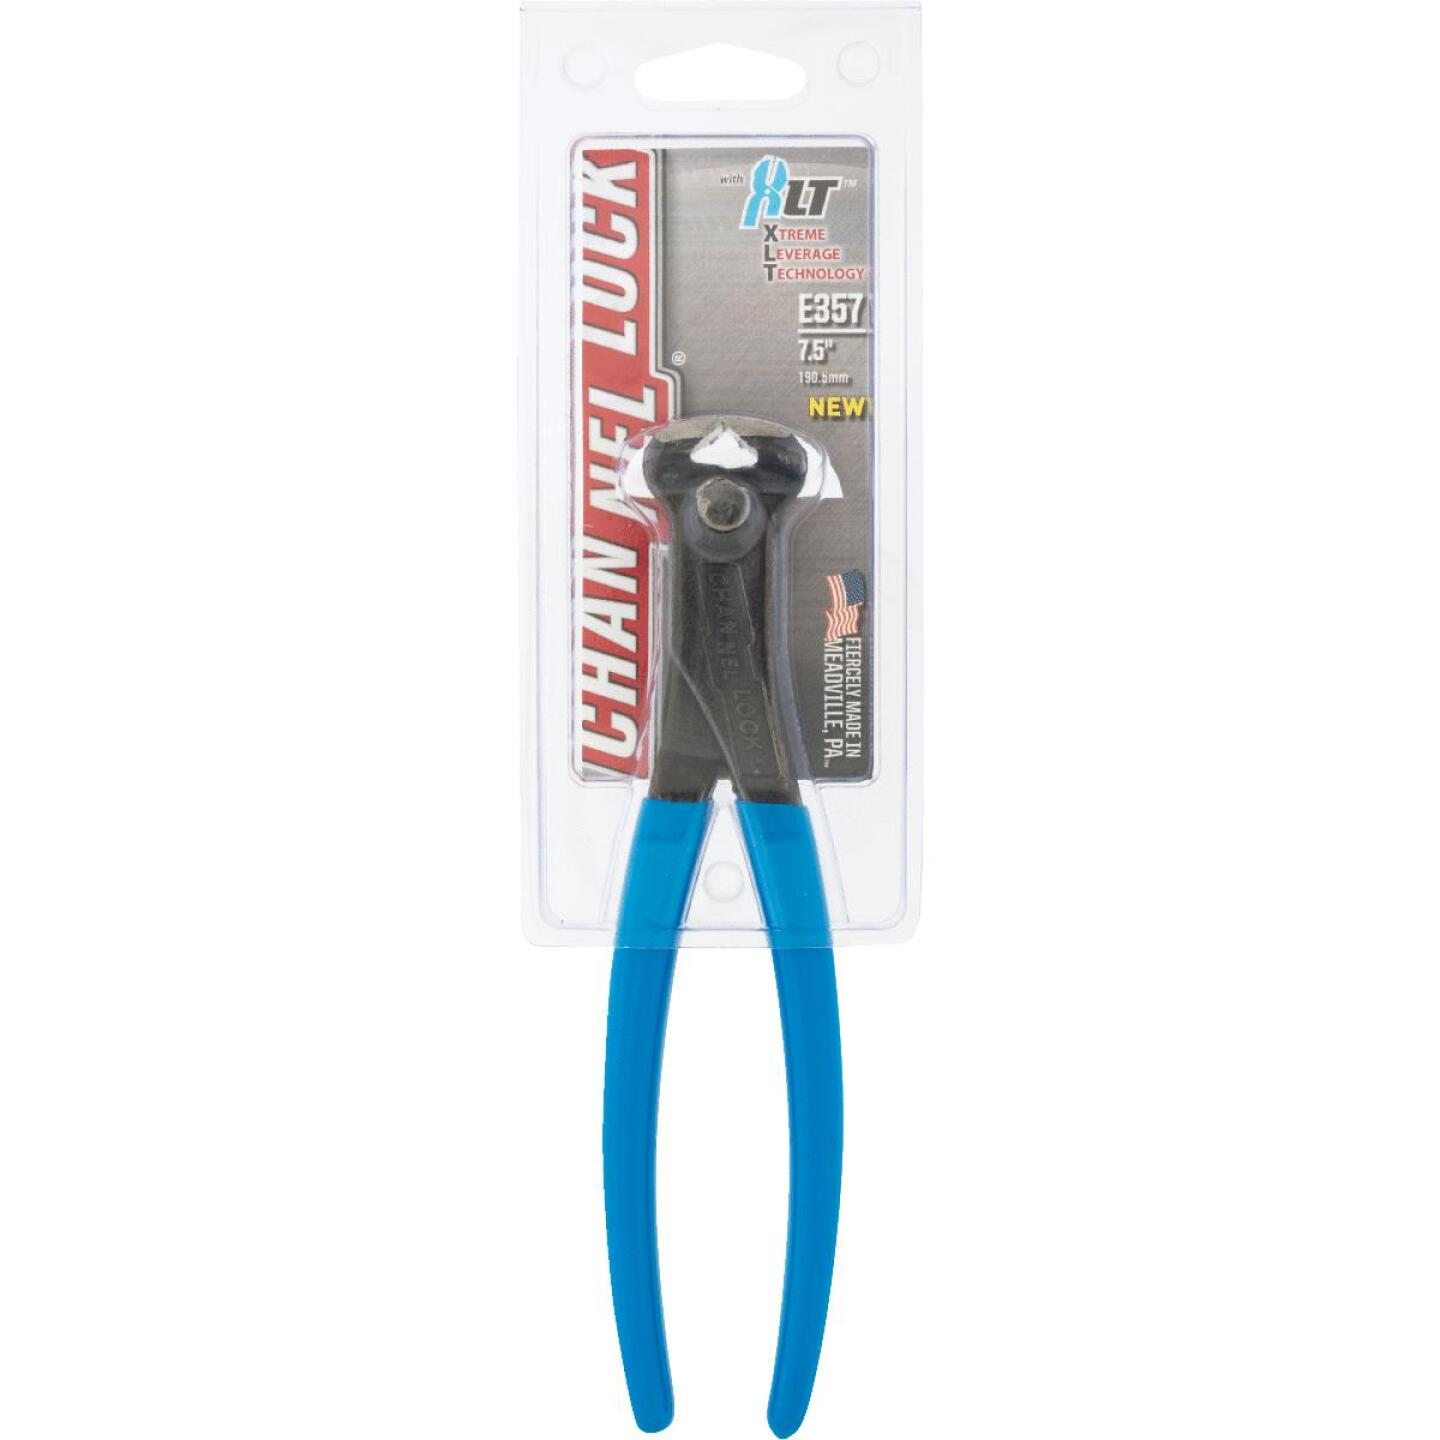 Channellock 7-1/2 In. E Series High Leverage Cutting Nipper Image 2